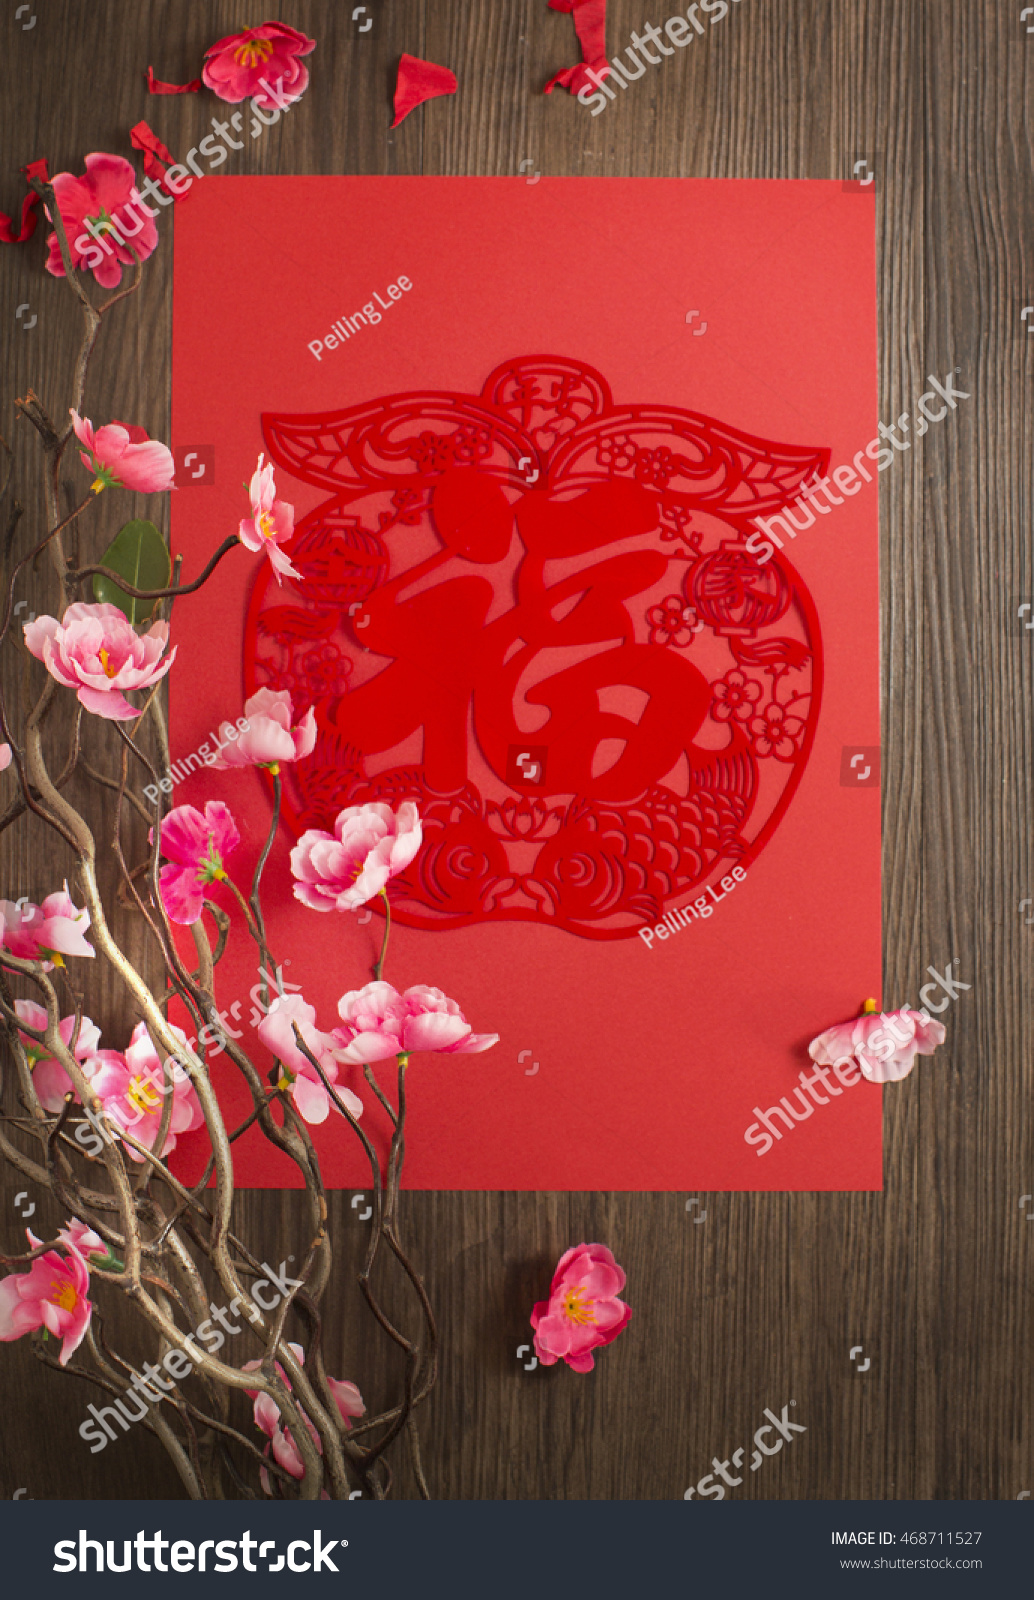 Flat Lay Chinese New Year Red Paper Cutting Wall Decoration And Plum Blossom On Wooden